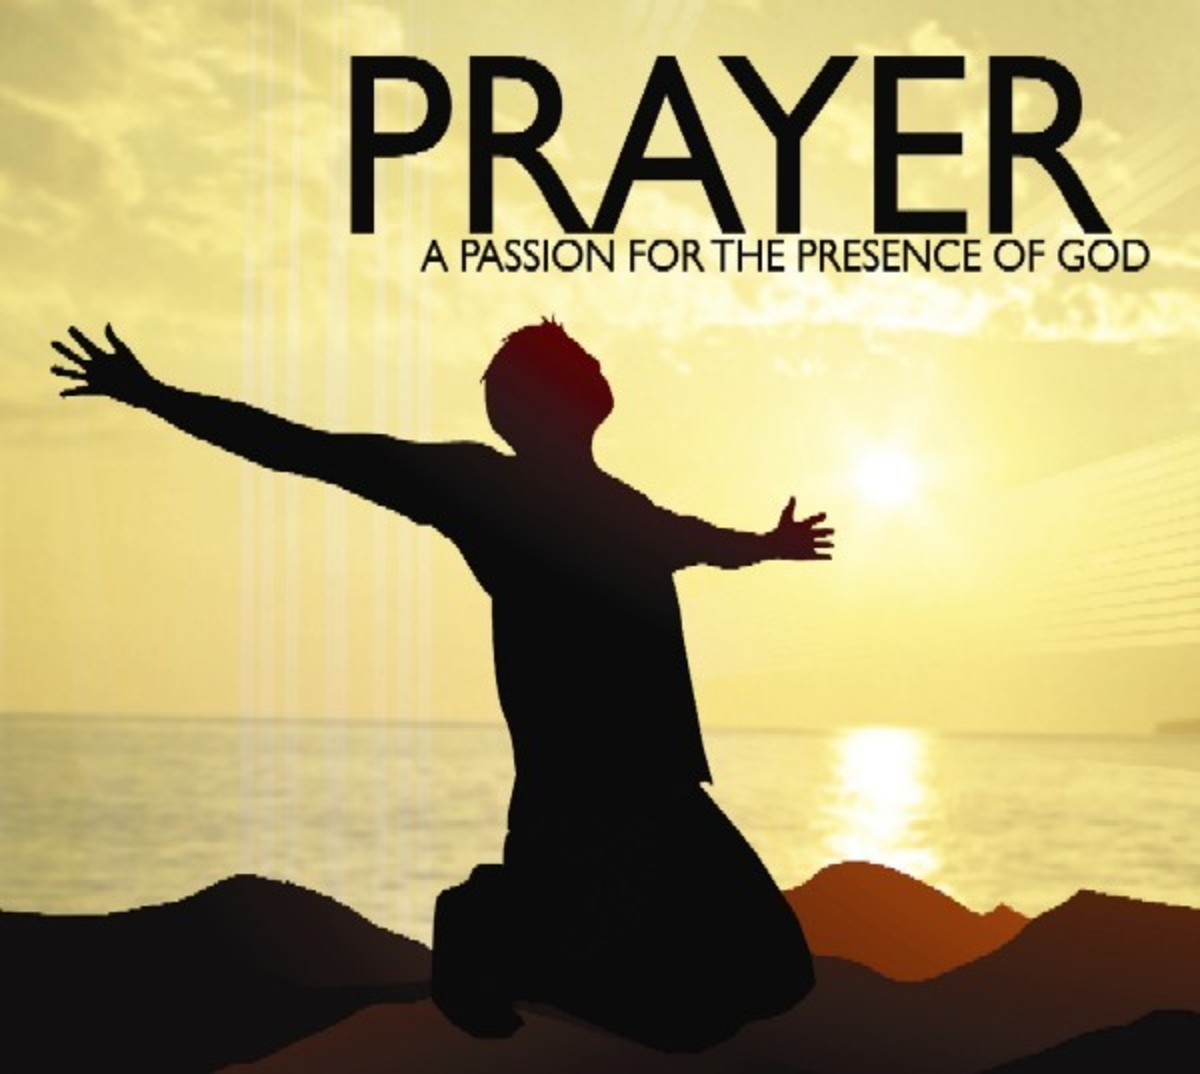 10 Types of Prayer From the New Testament of the Bible